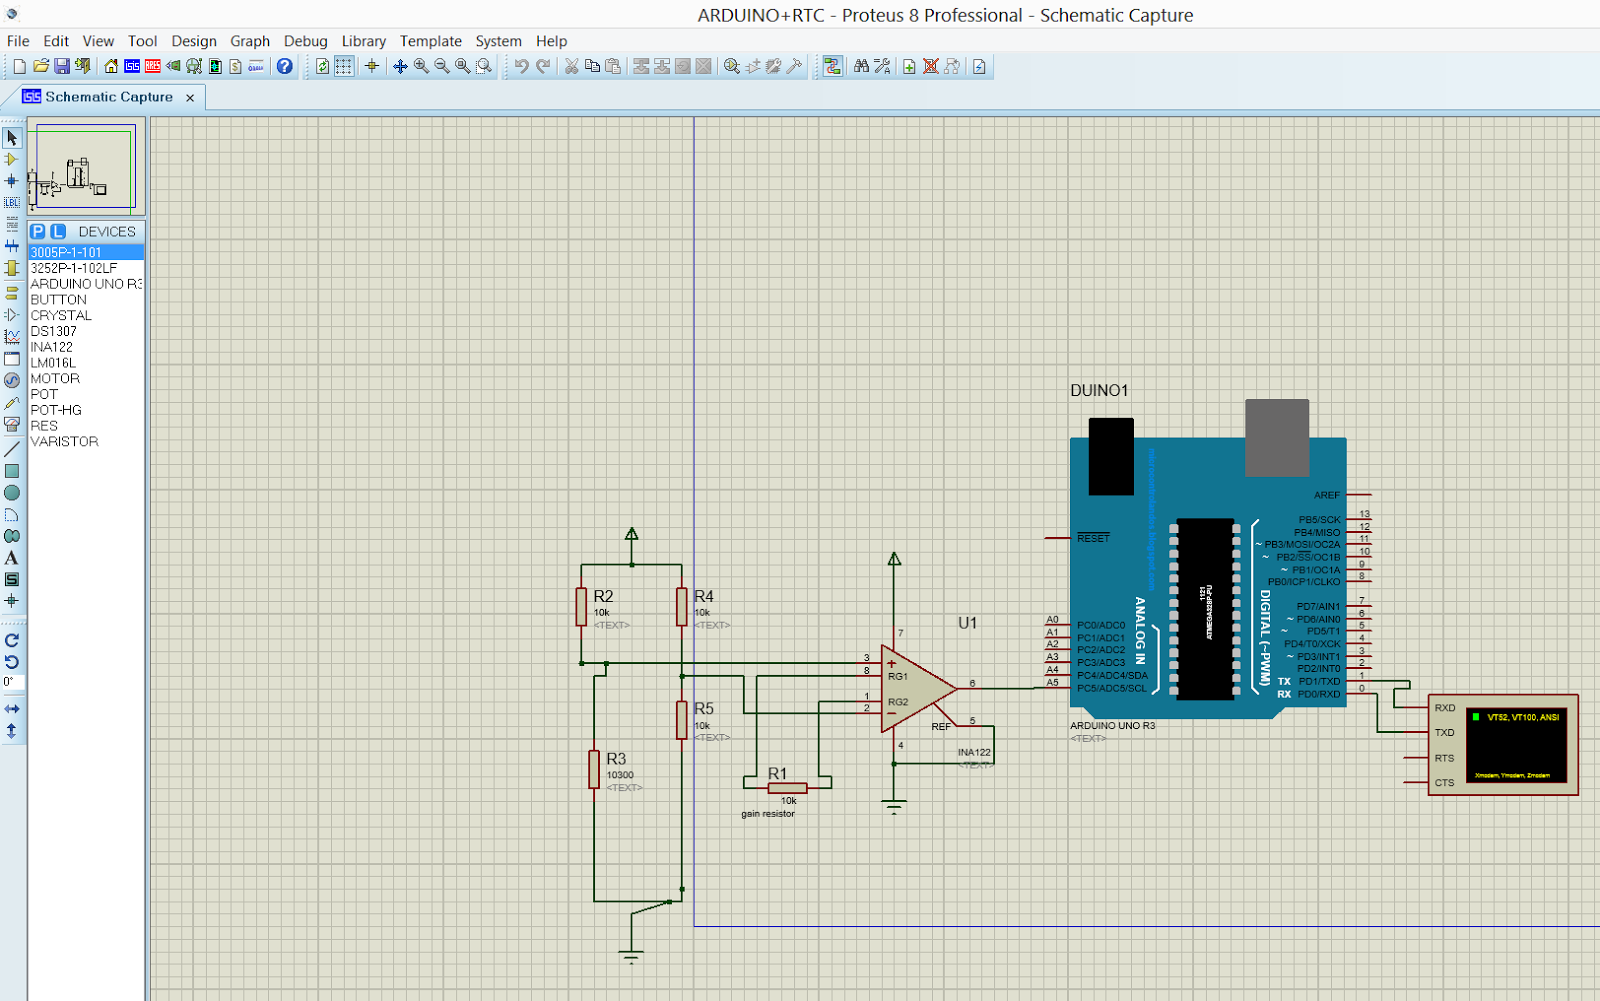 EMERGING TECHNOLOGIES: LOAD CELL SIMULATION IN PROTEUS USING ARDUINO